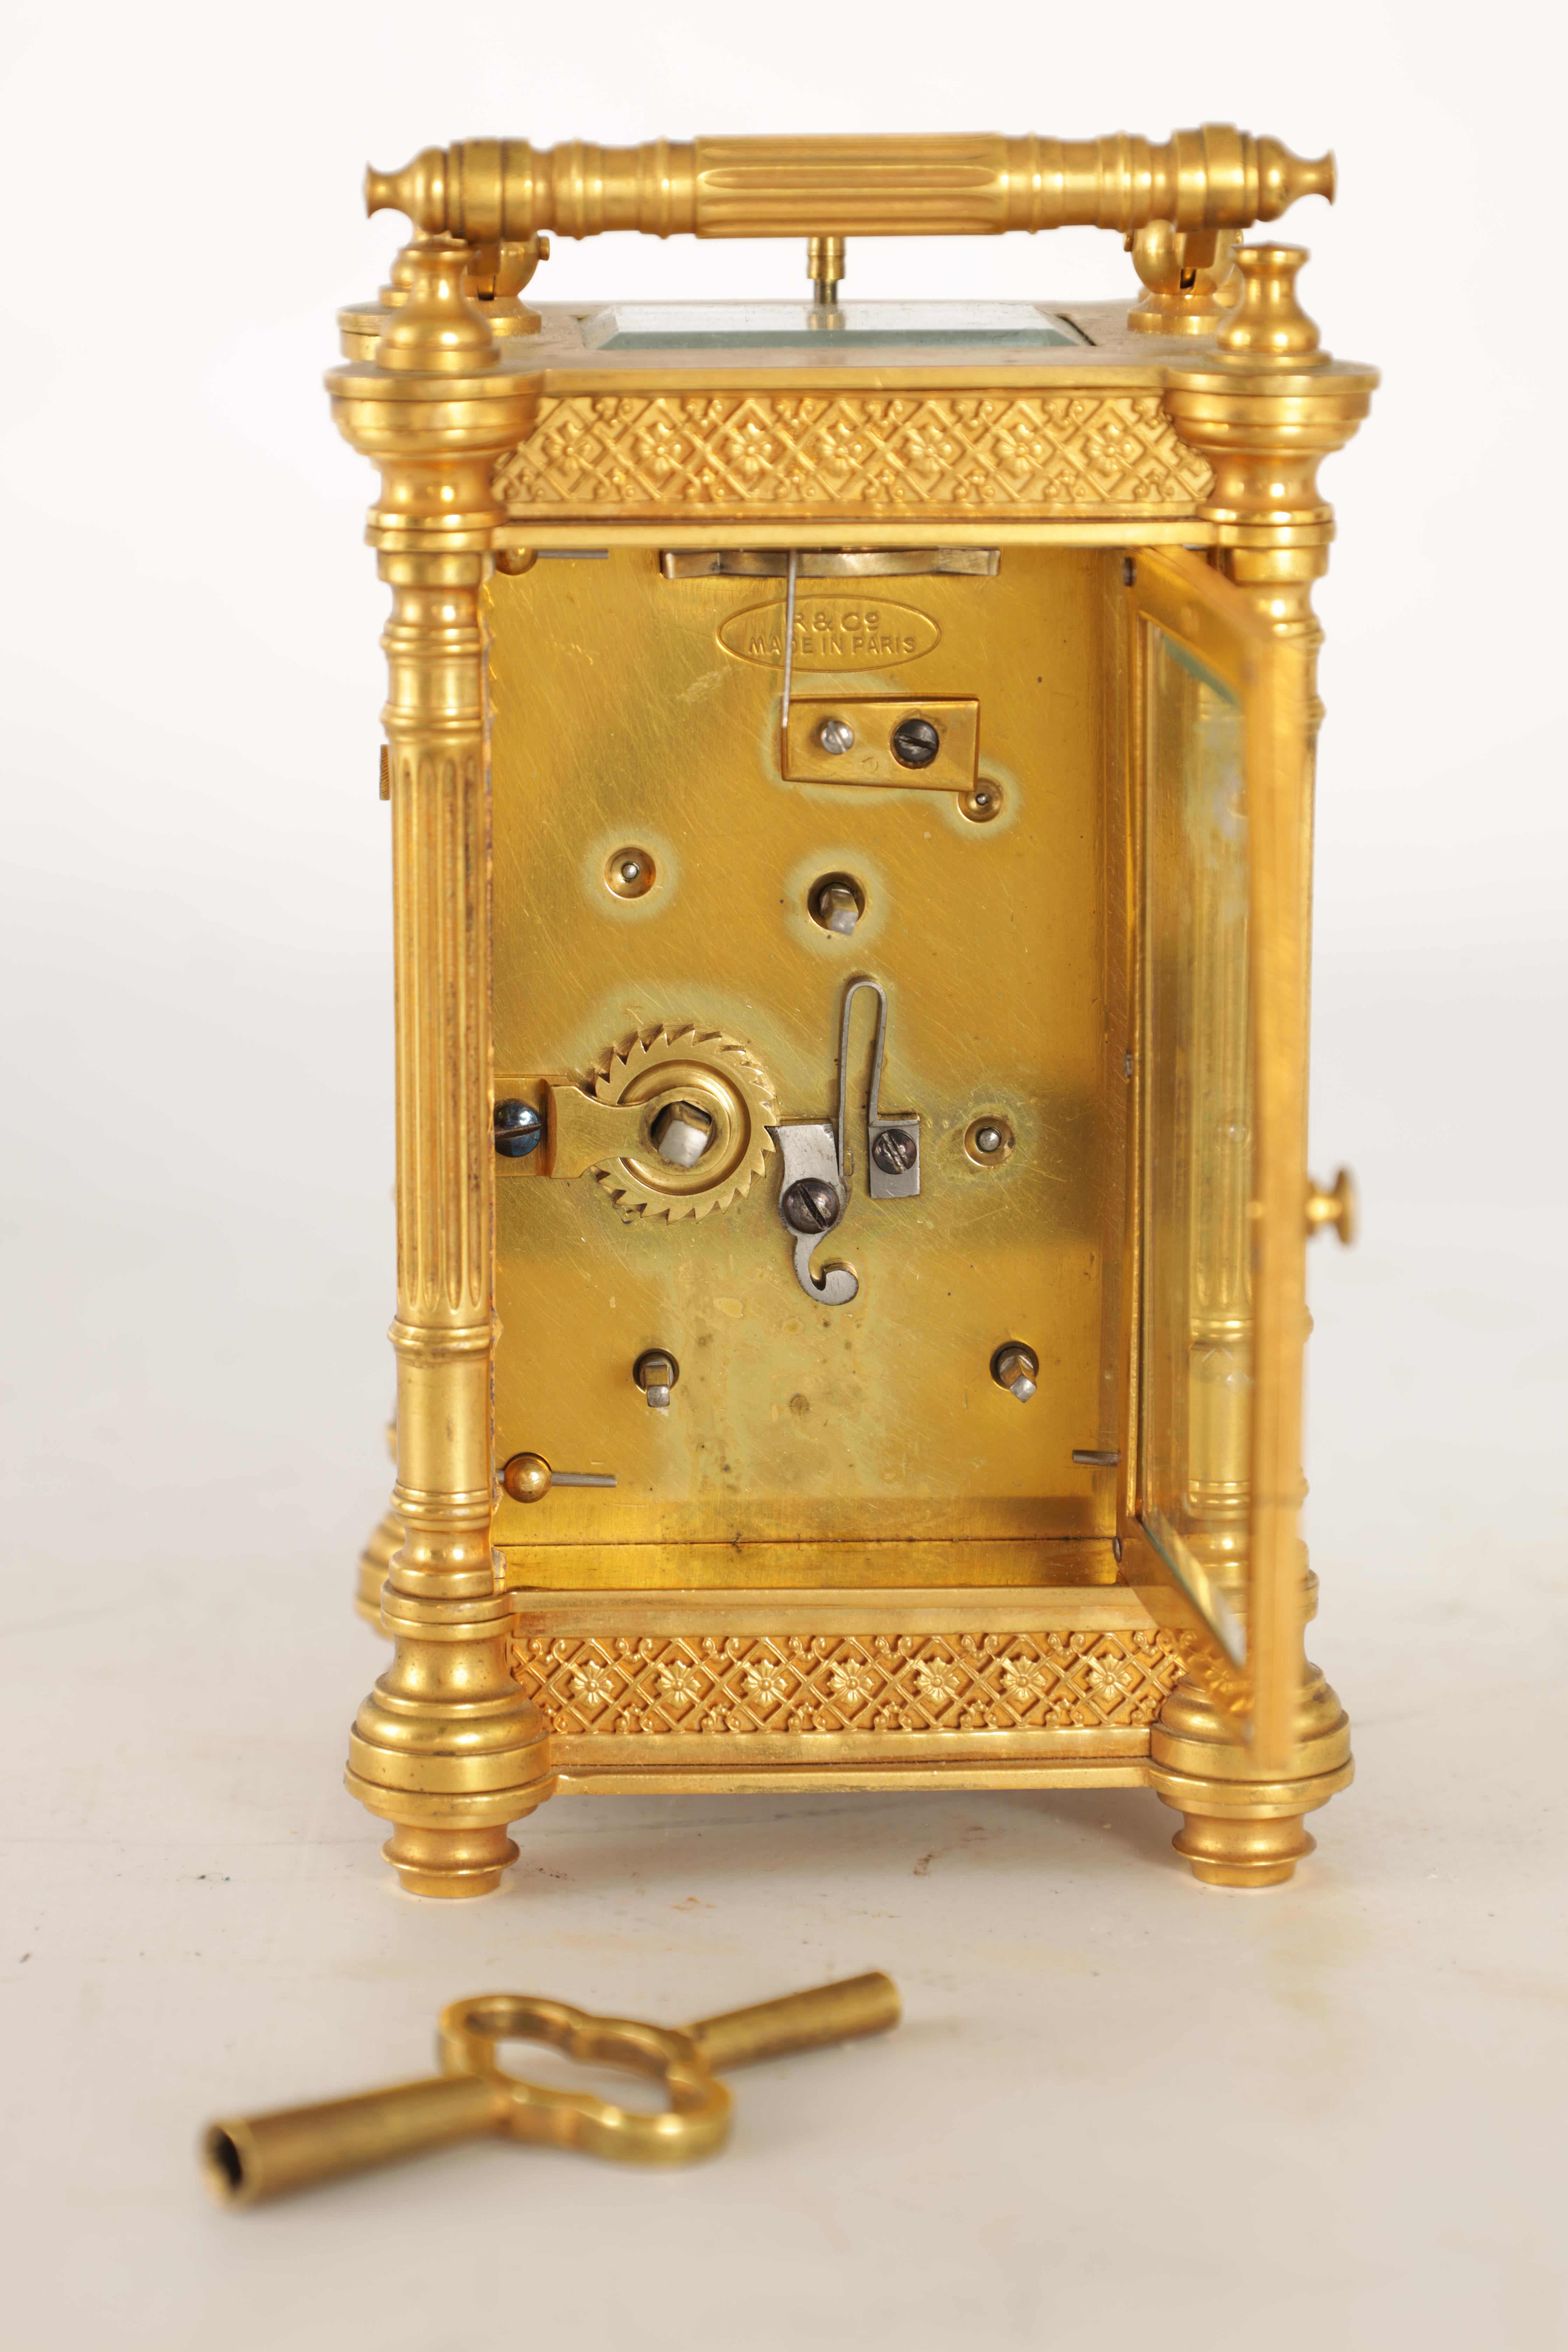 A LATE 19TH CENTURY FRENCH BRASS CARRIAGE CLOCK WITH CALENDAR the gilt case with pierced frieze - Image 5 of 6